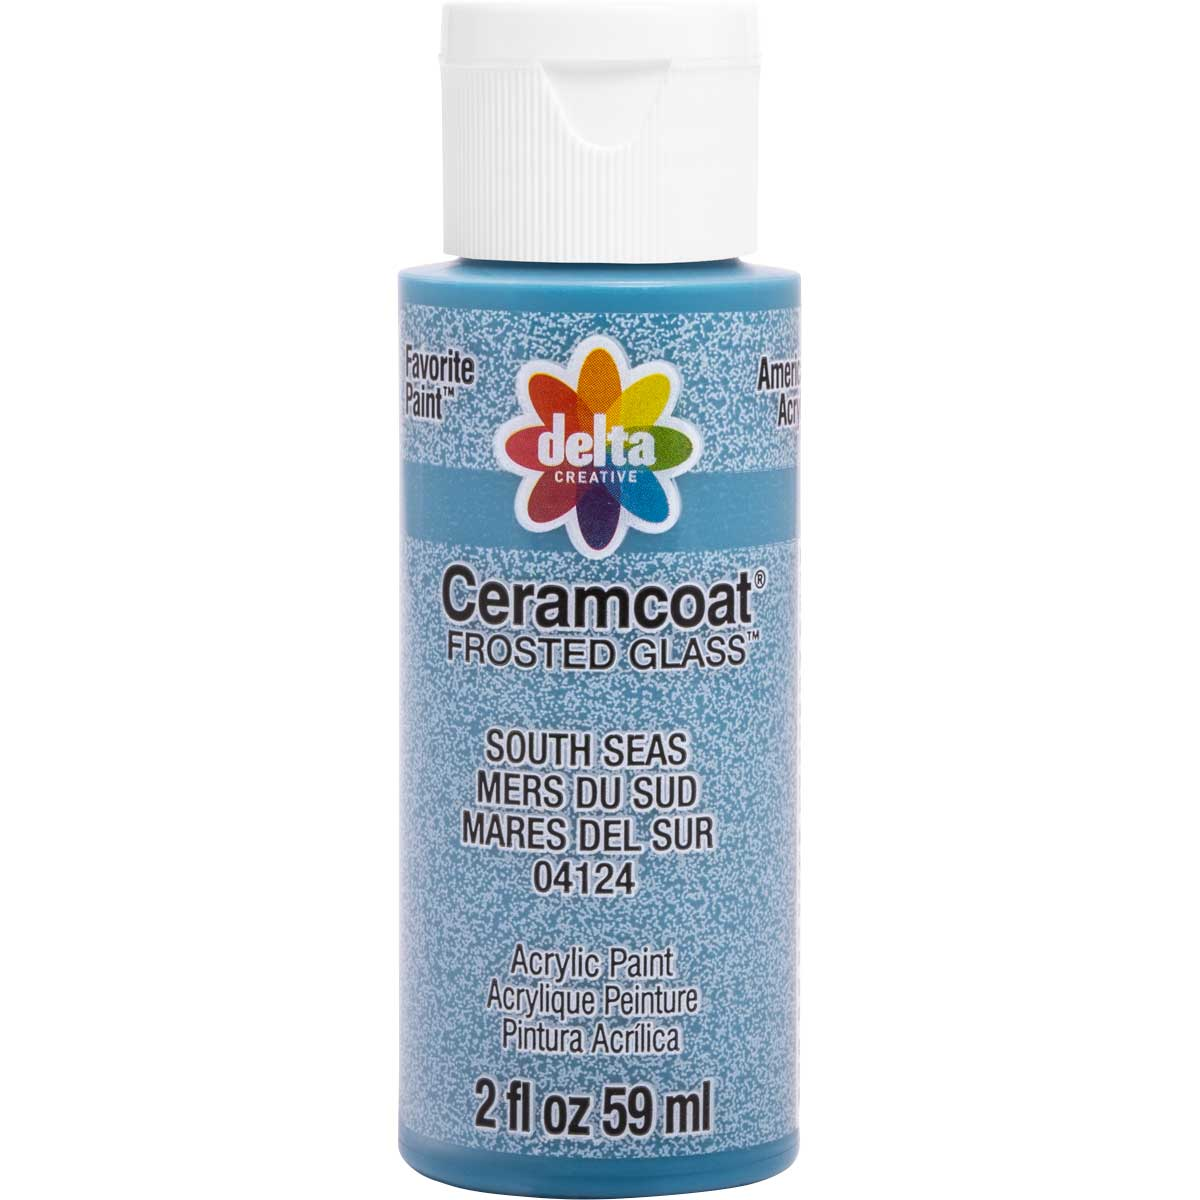 Delta Ceramcoat ® Frosted Glass Paint - South Seas, 2 oz.